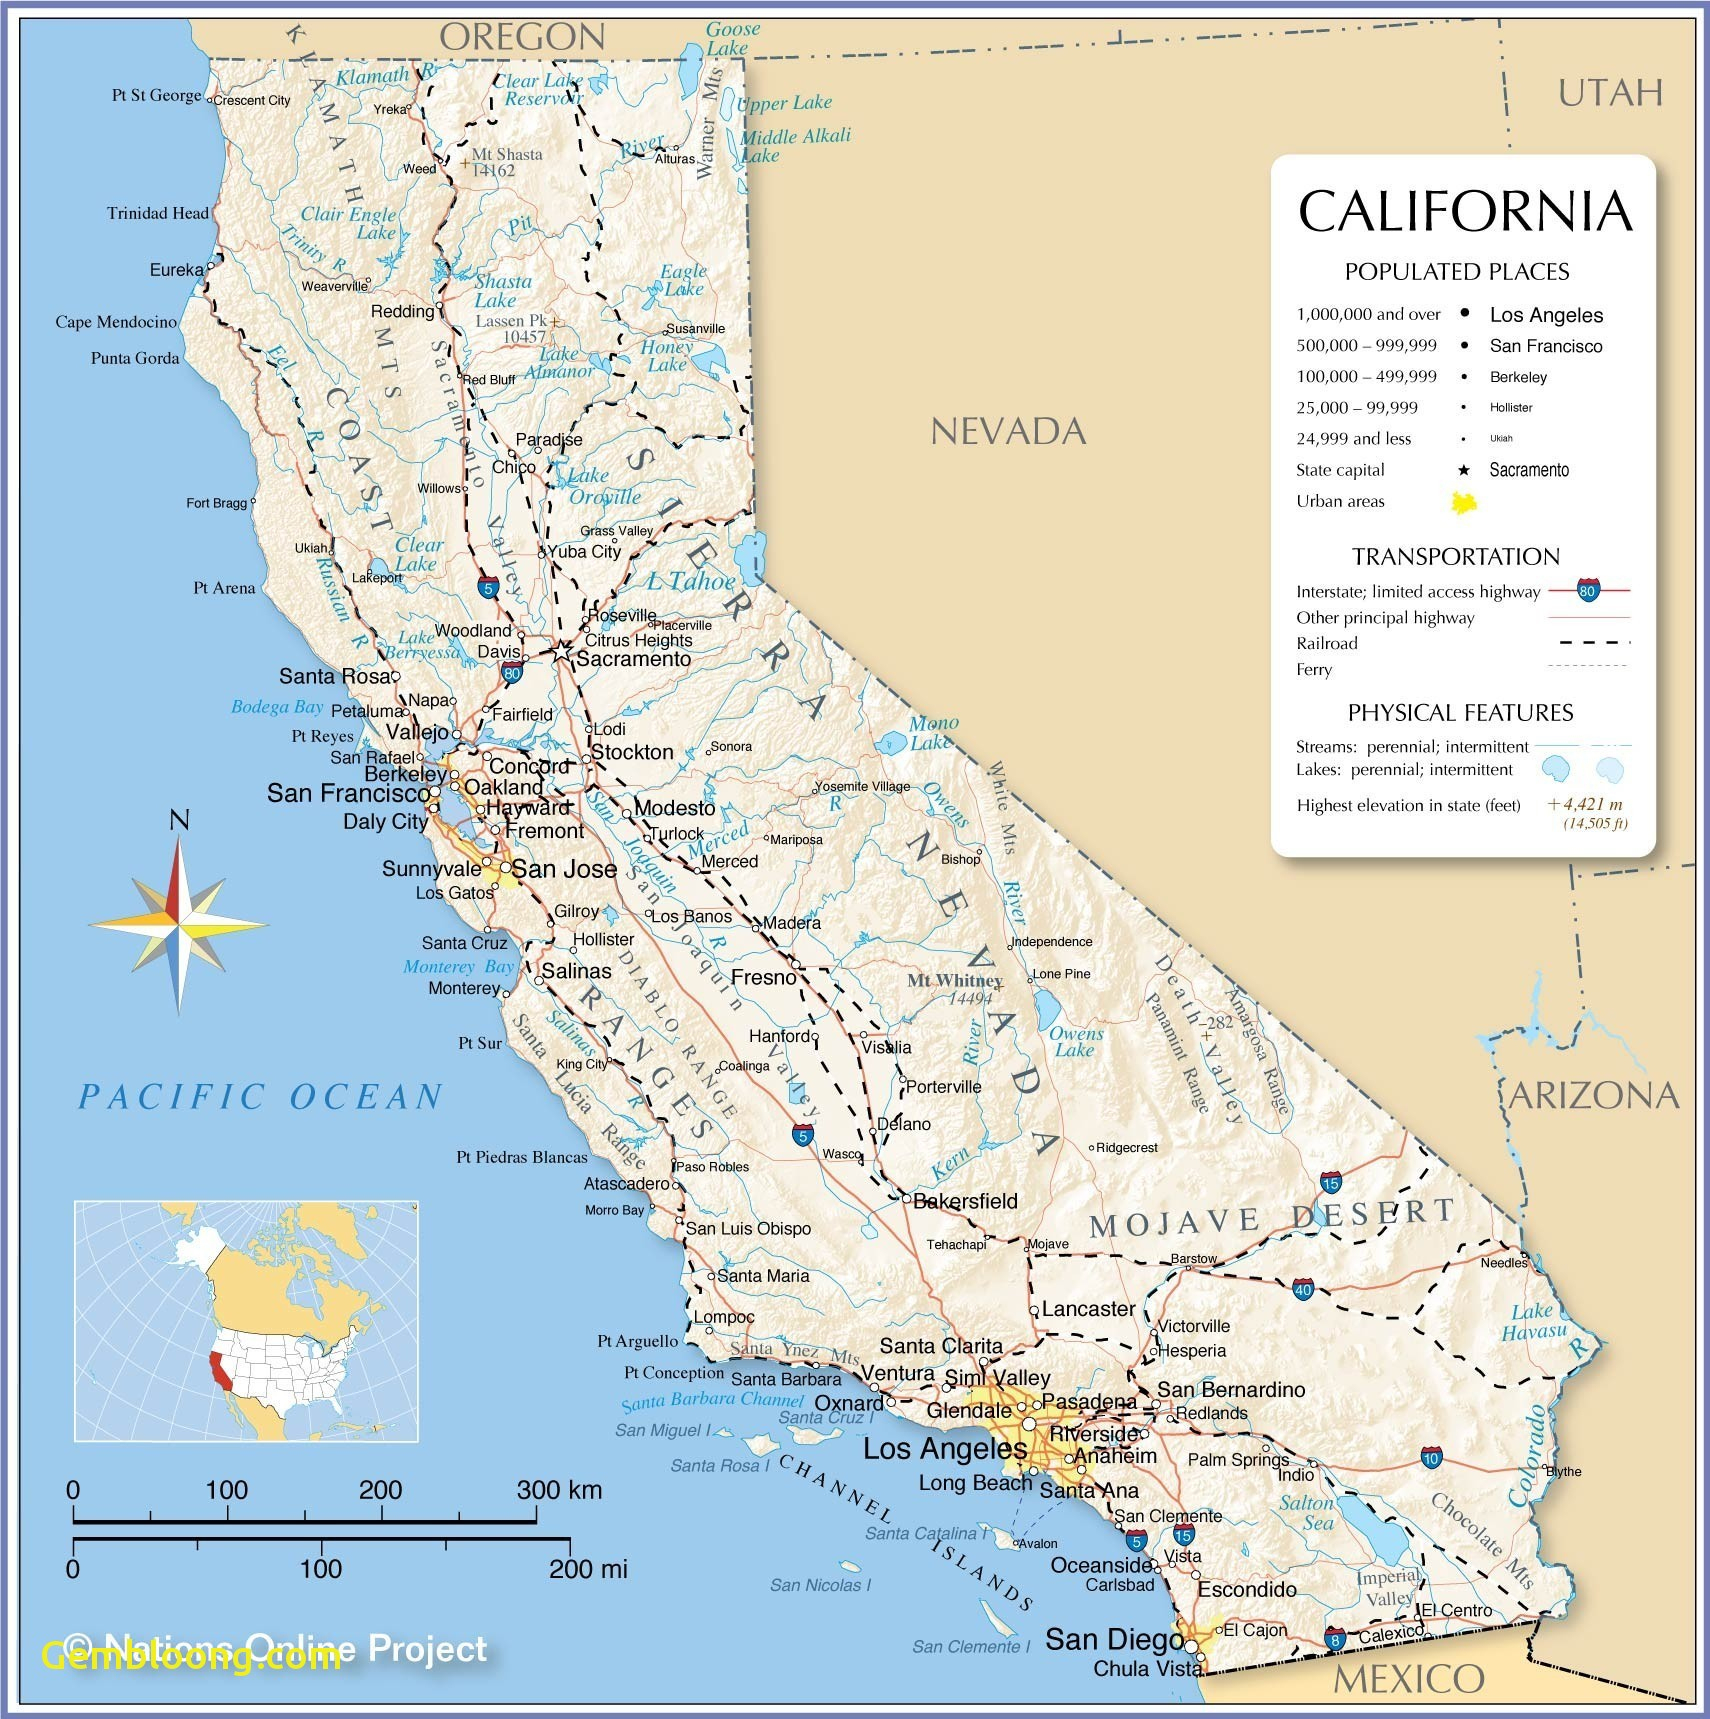 Us West Coast Counties Map With Cities For Sale Florida Usa Names - Map Of Florida West Coast Cities